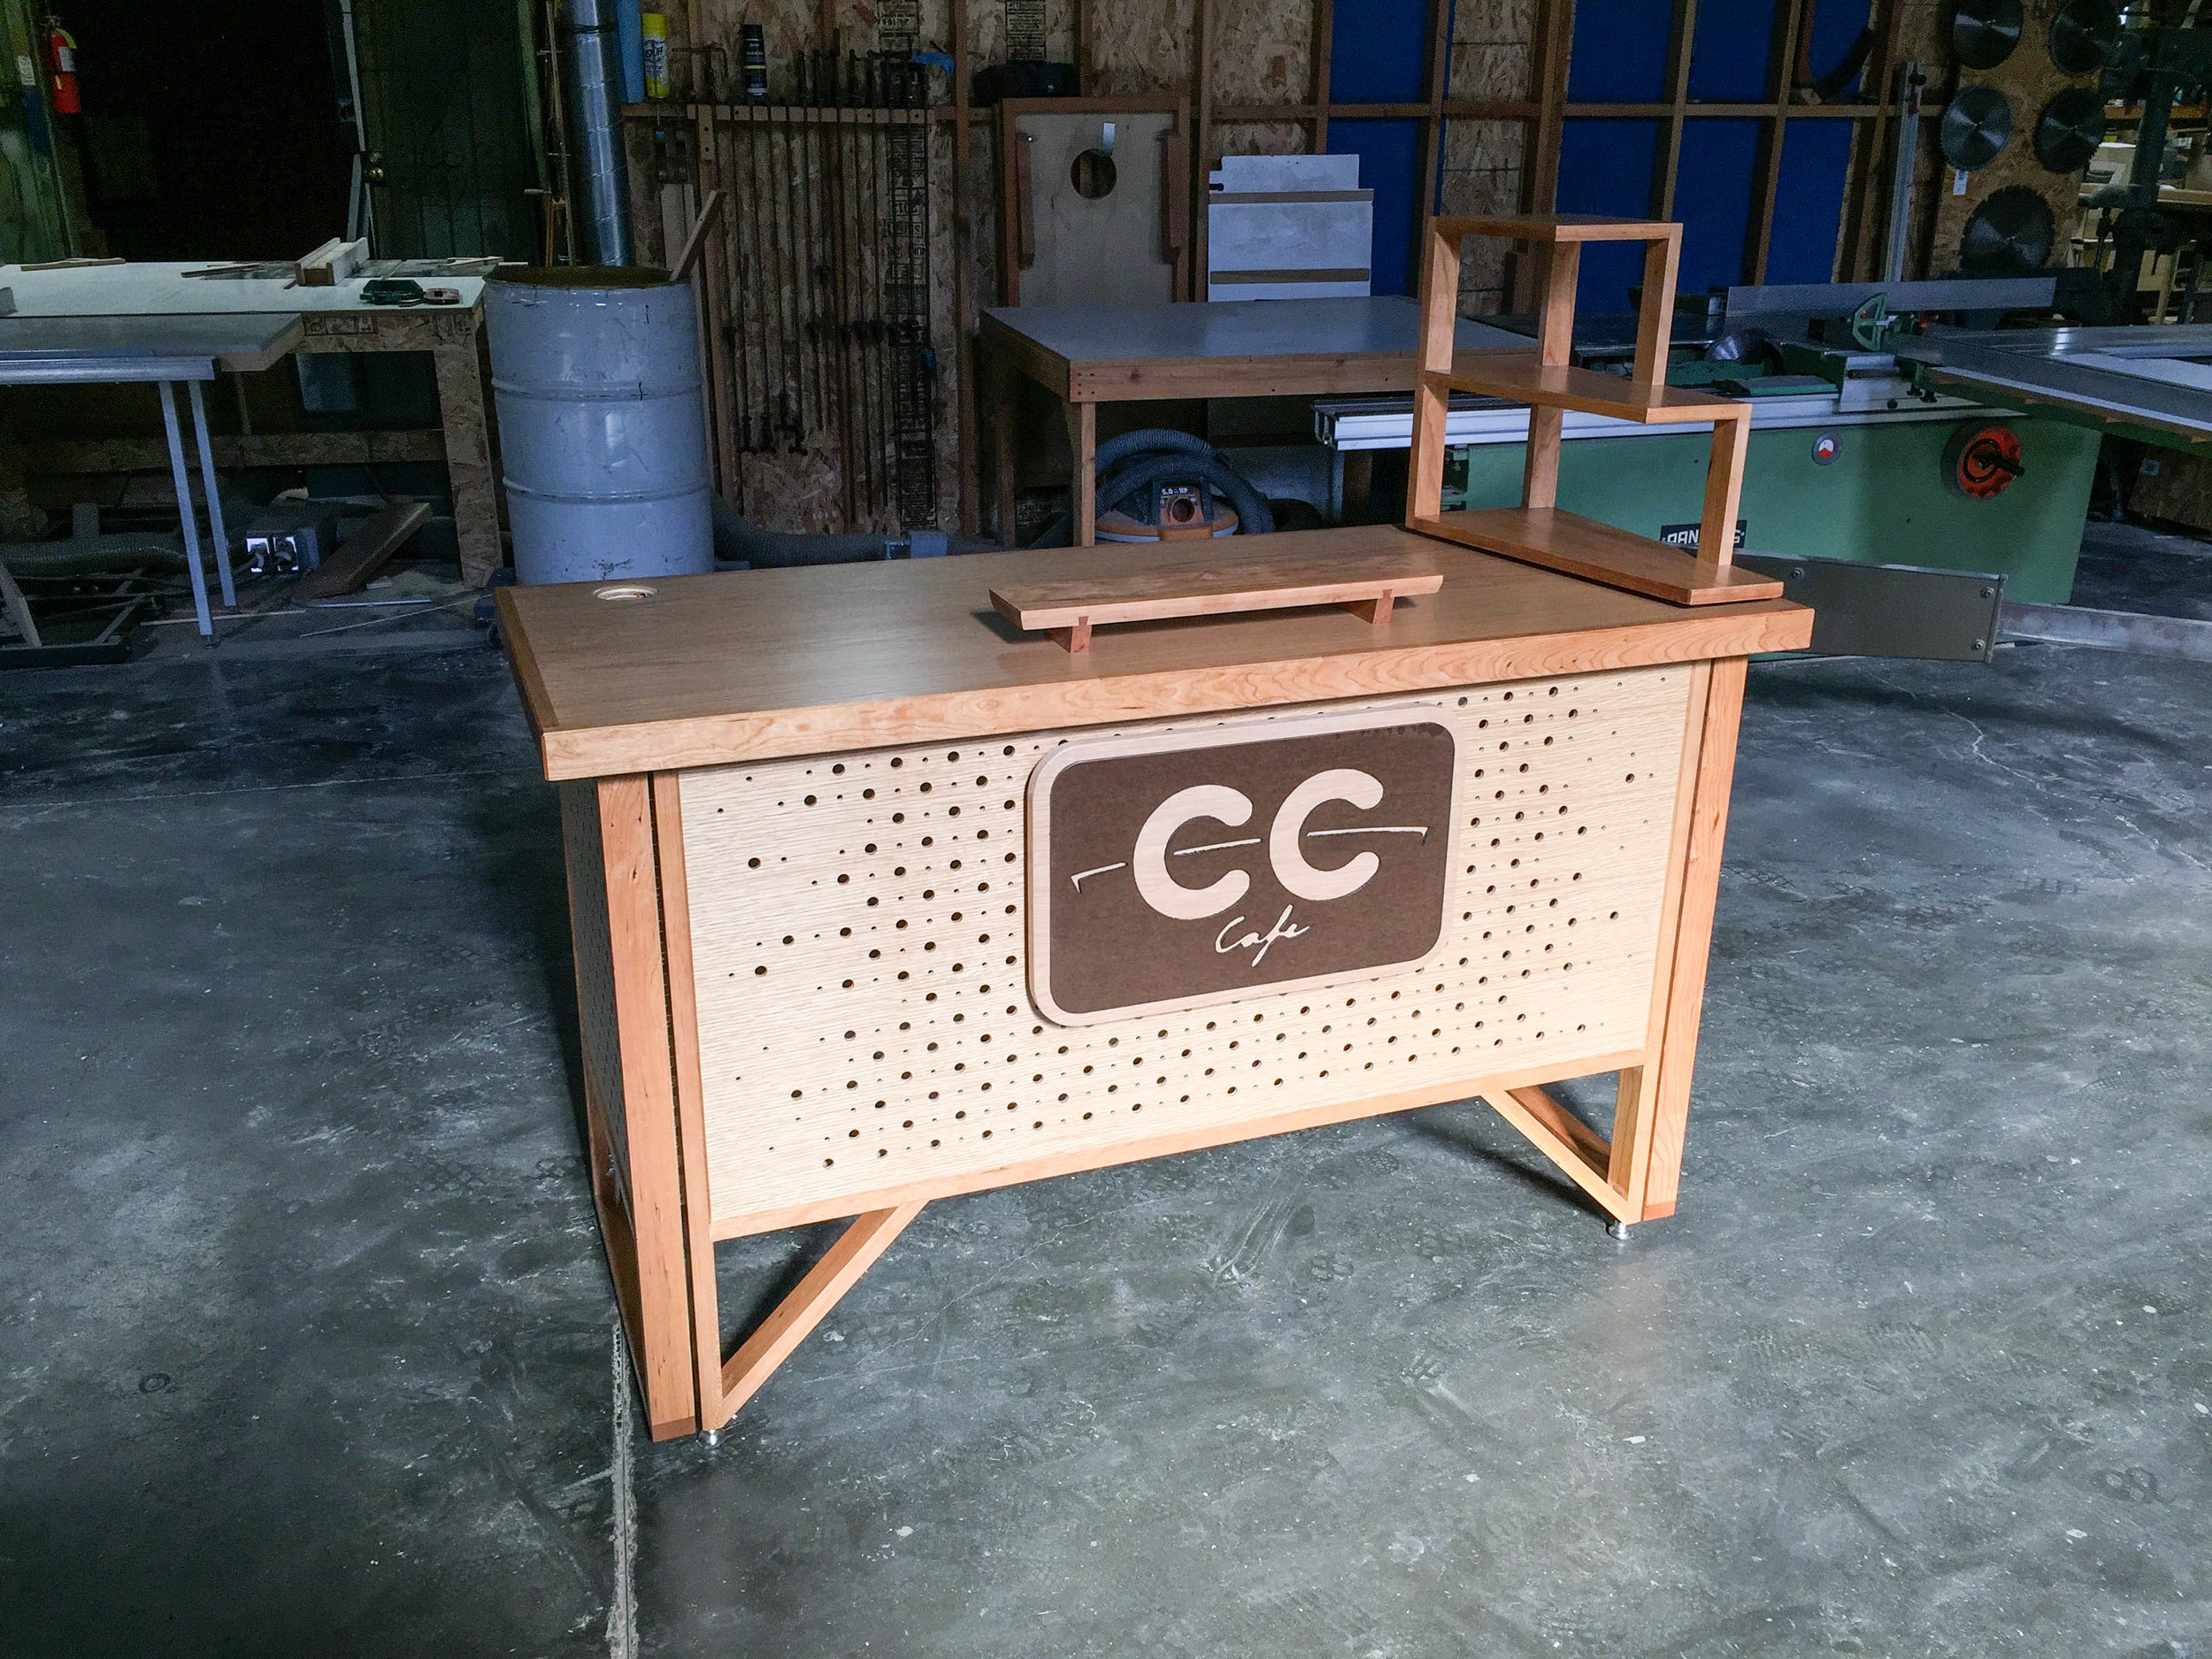 CC Cafe Coffee Counter -